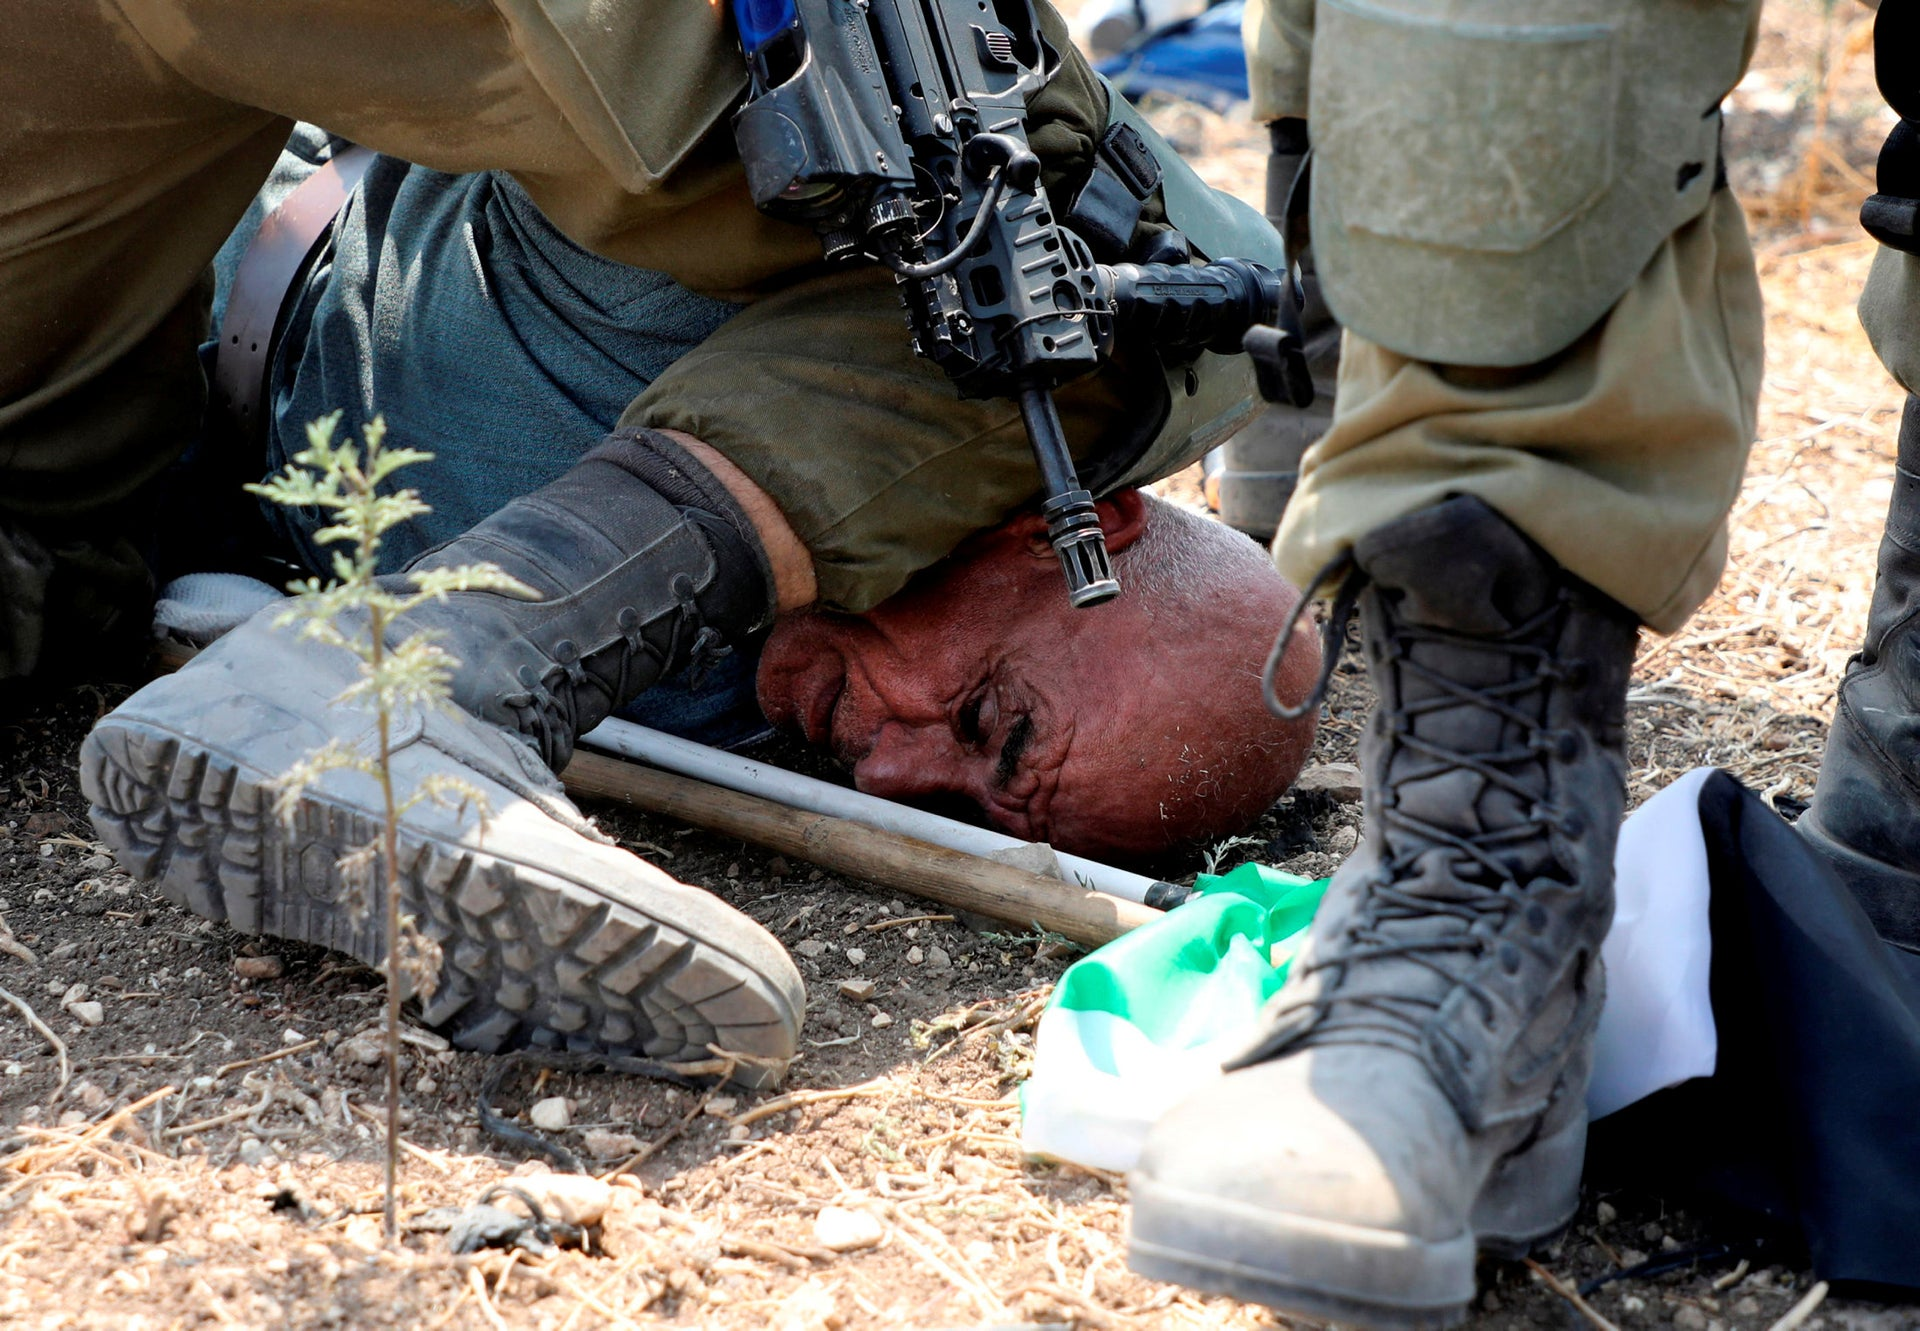 An IDF soldier pins Khairi Hanoun to the ground with his knee on his neck, in Shufa.